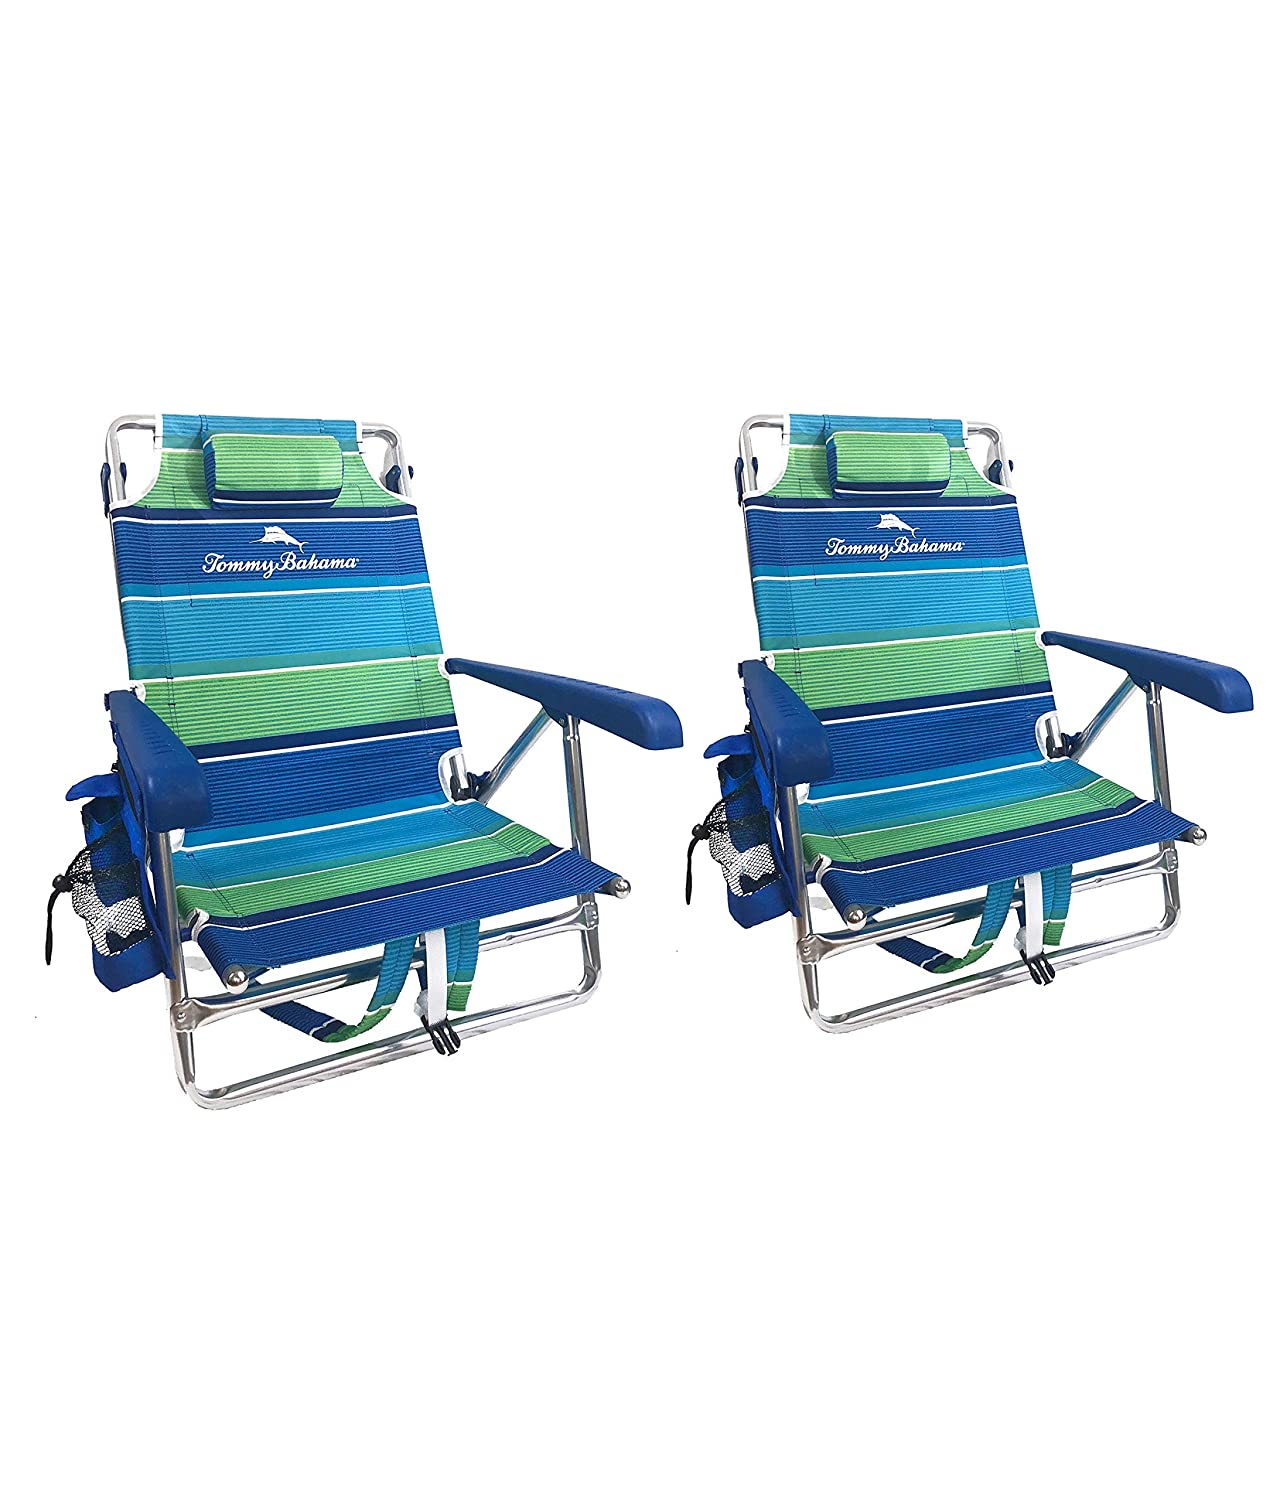 Tommy Bahama 2019 2 Backpack Beach Chairs with Storage Pouch and Towel Bar